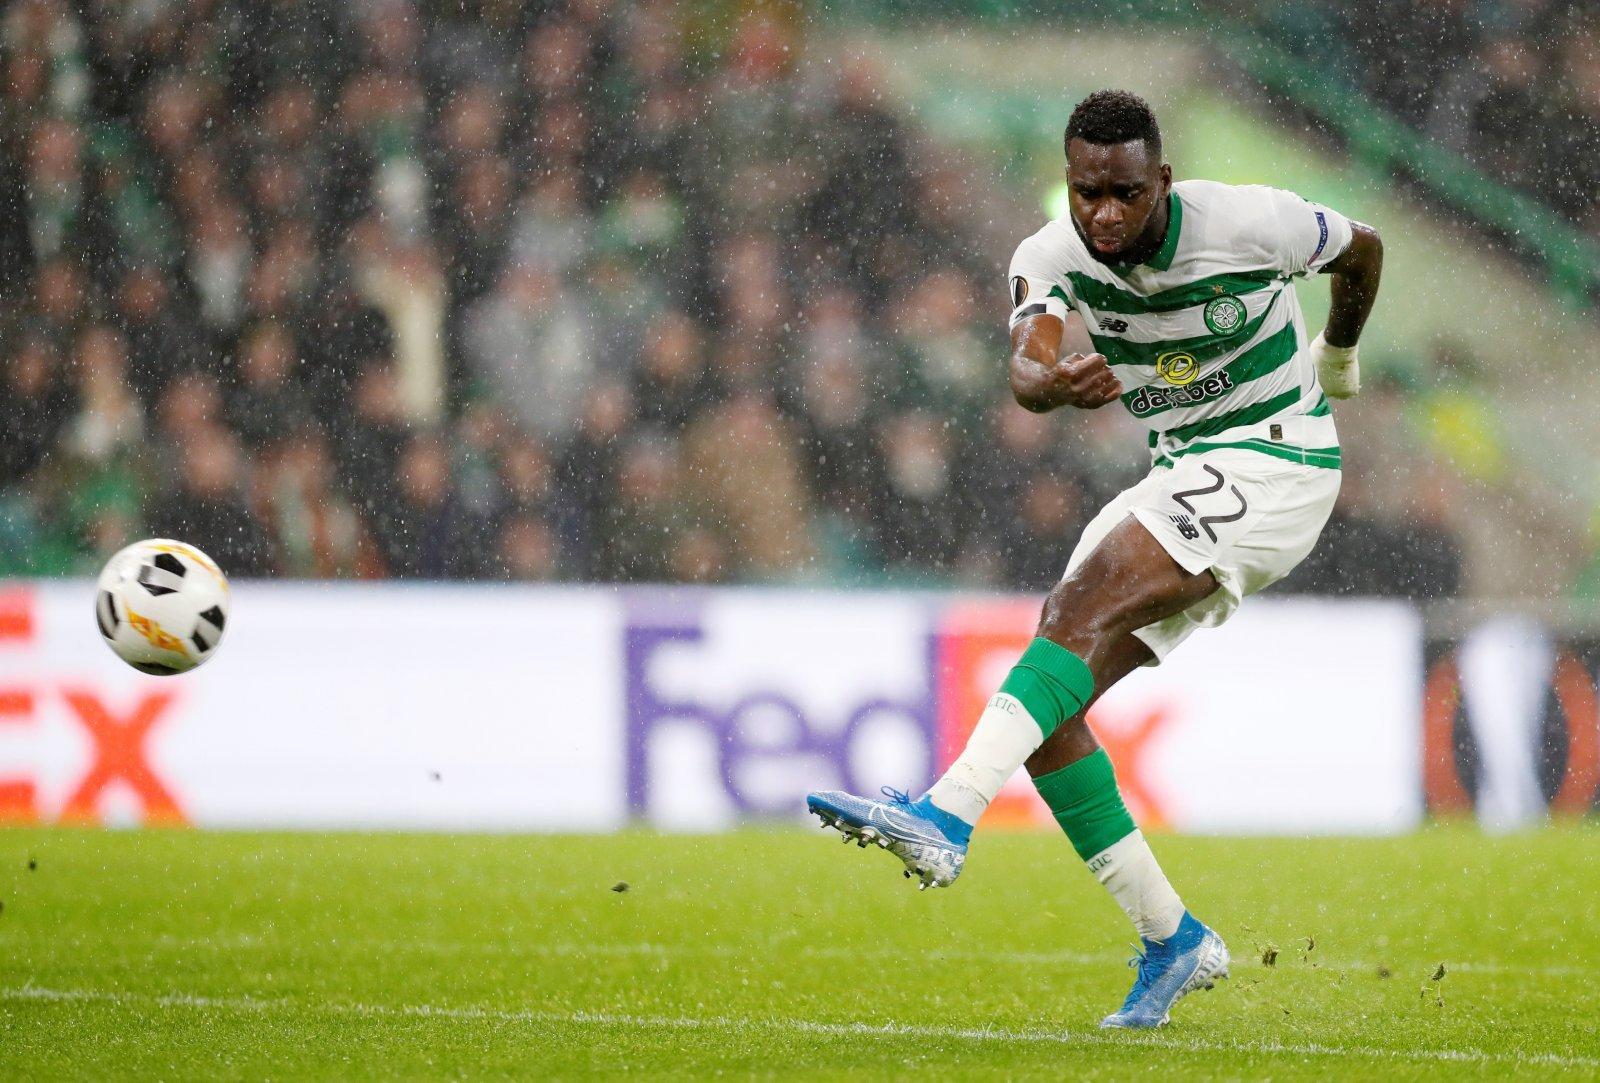 Celtic: Fans call for Odsonne Edouard to be given a new deal after hat-trick